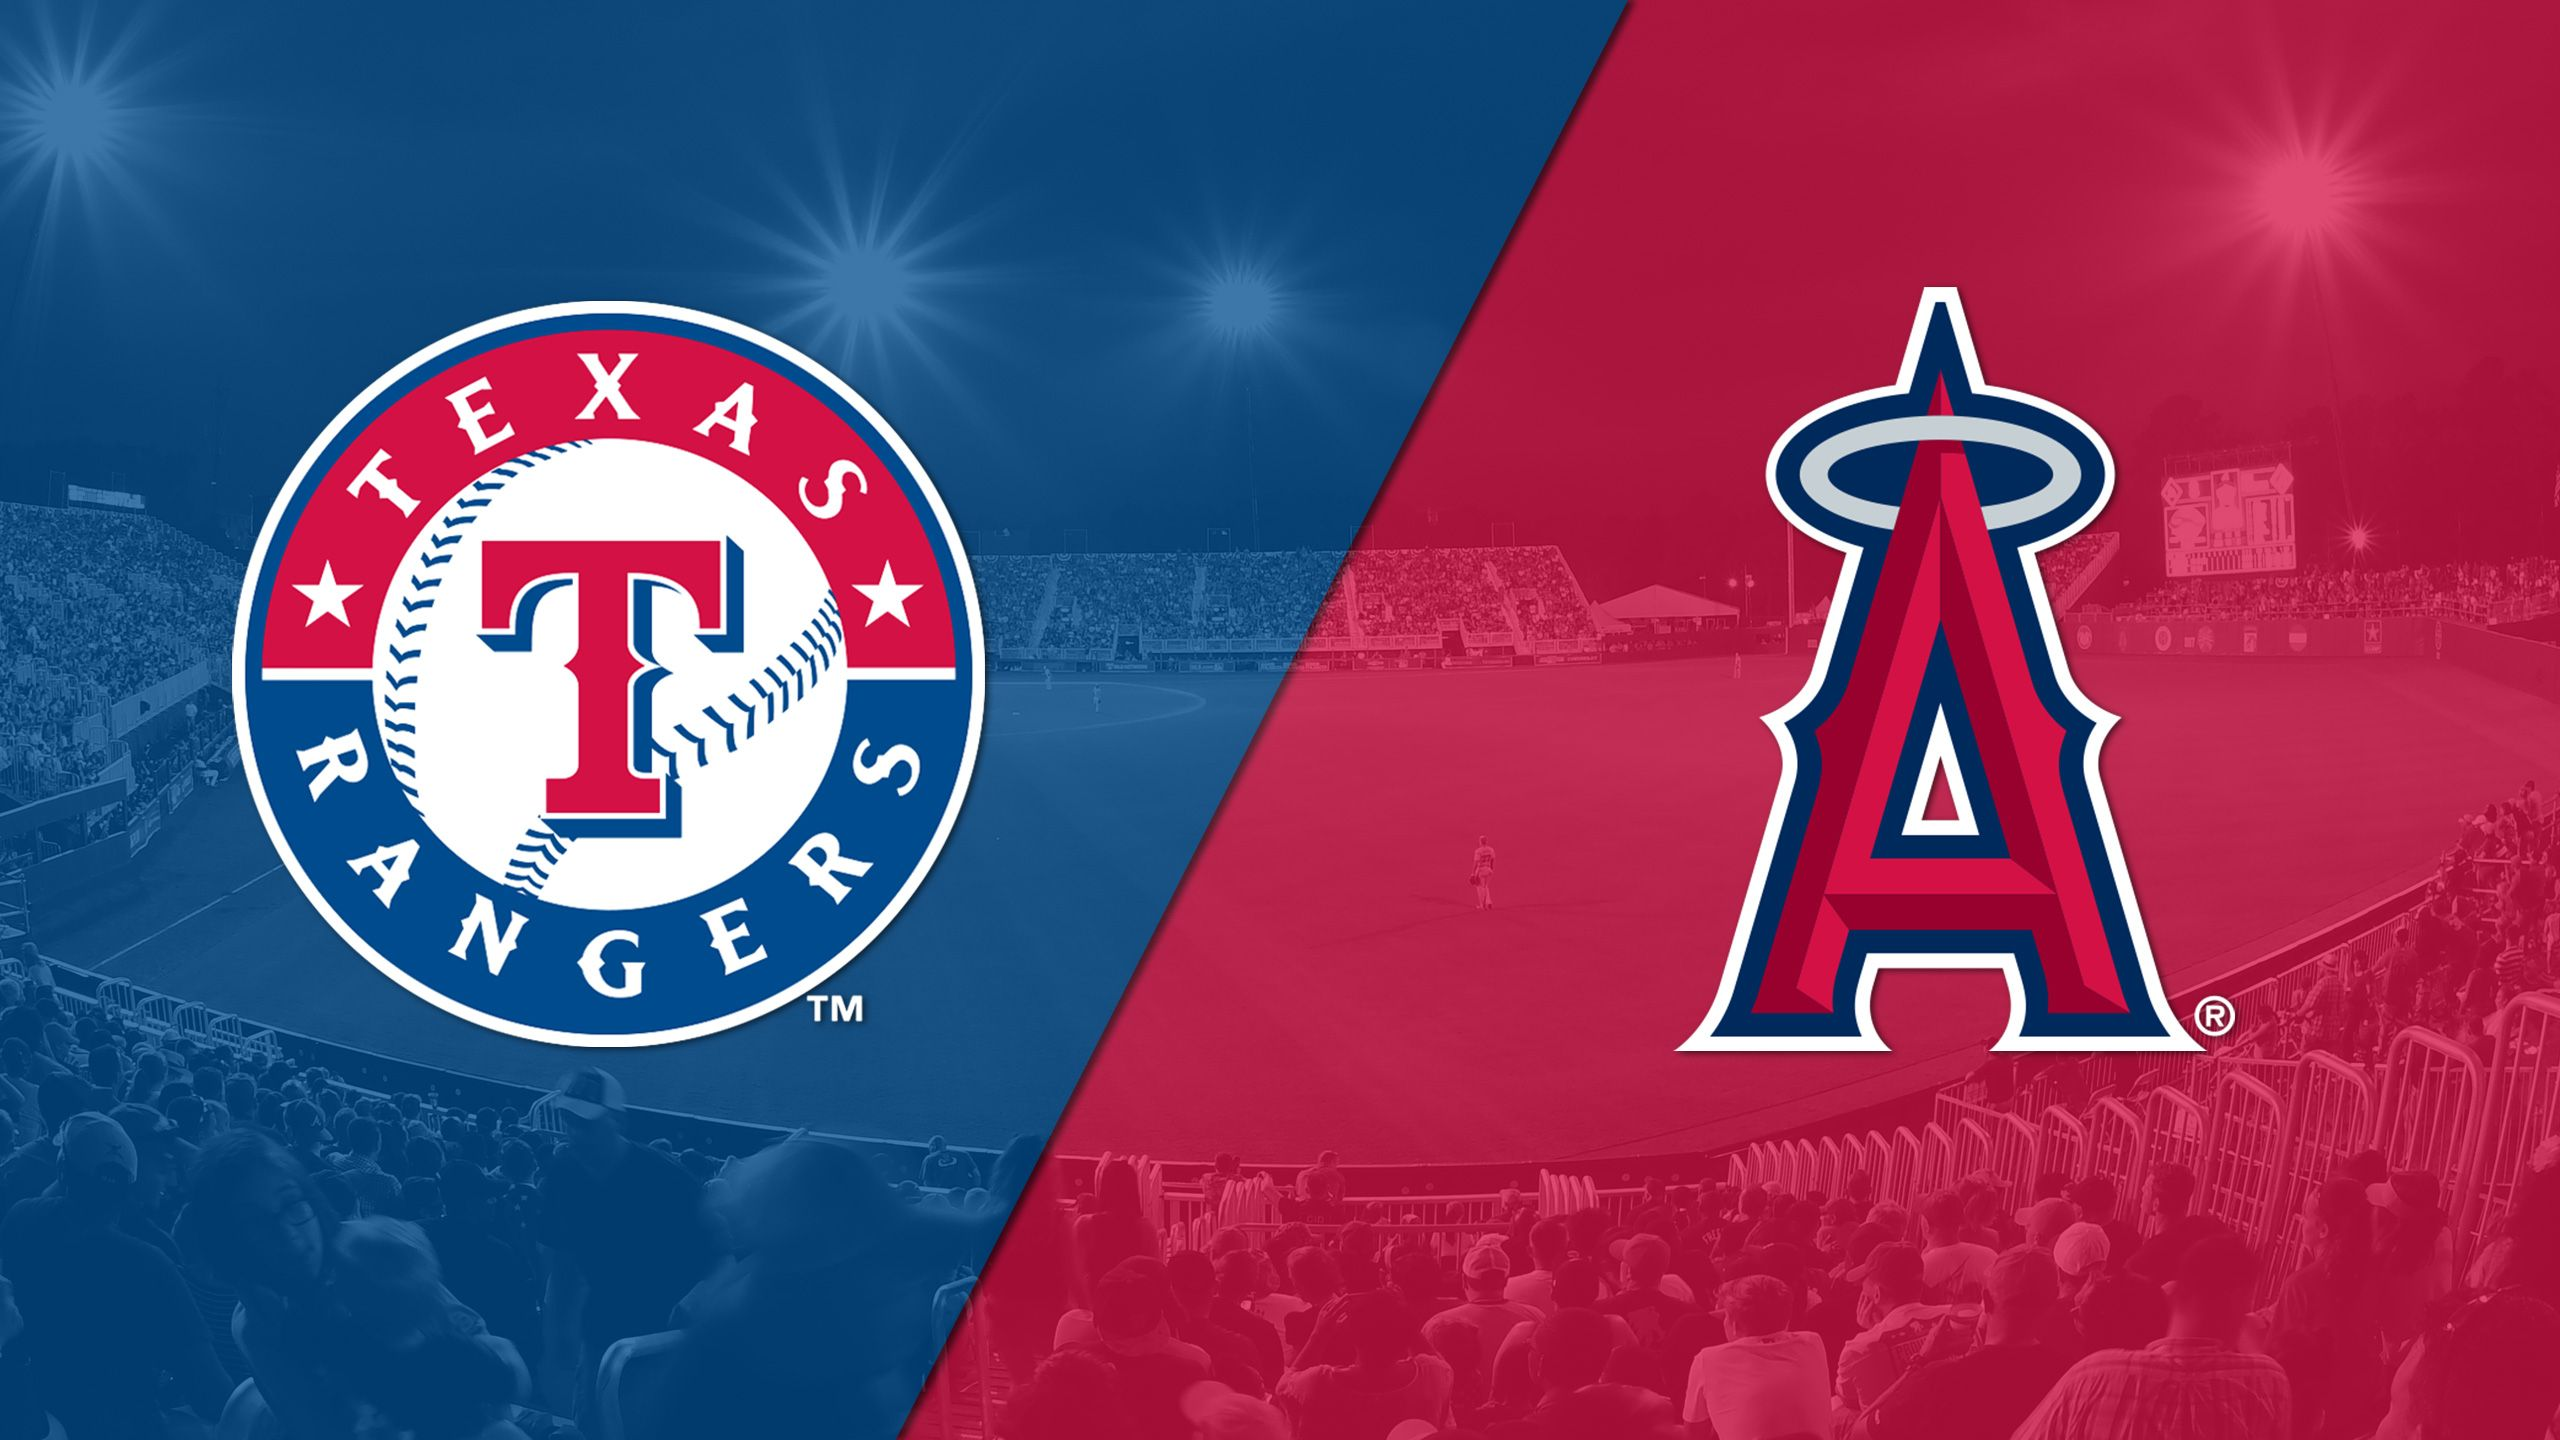 Texas Rangers vs. Los Angeles Angels of Anaheim